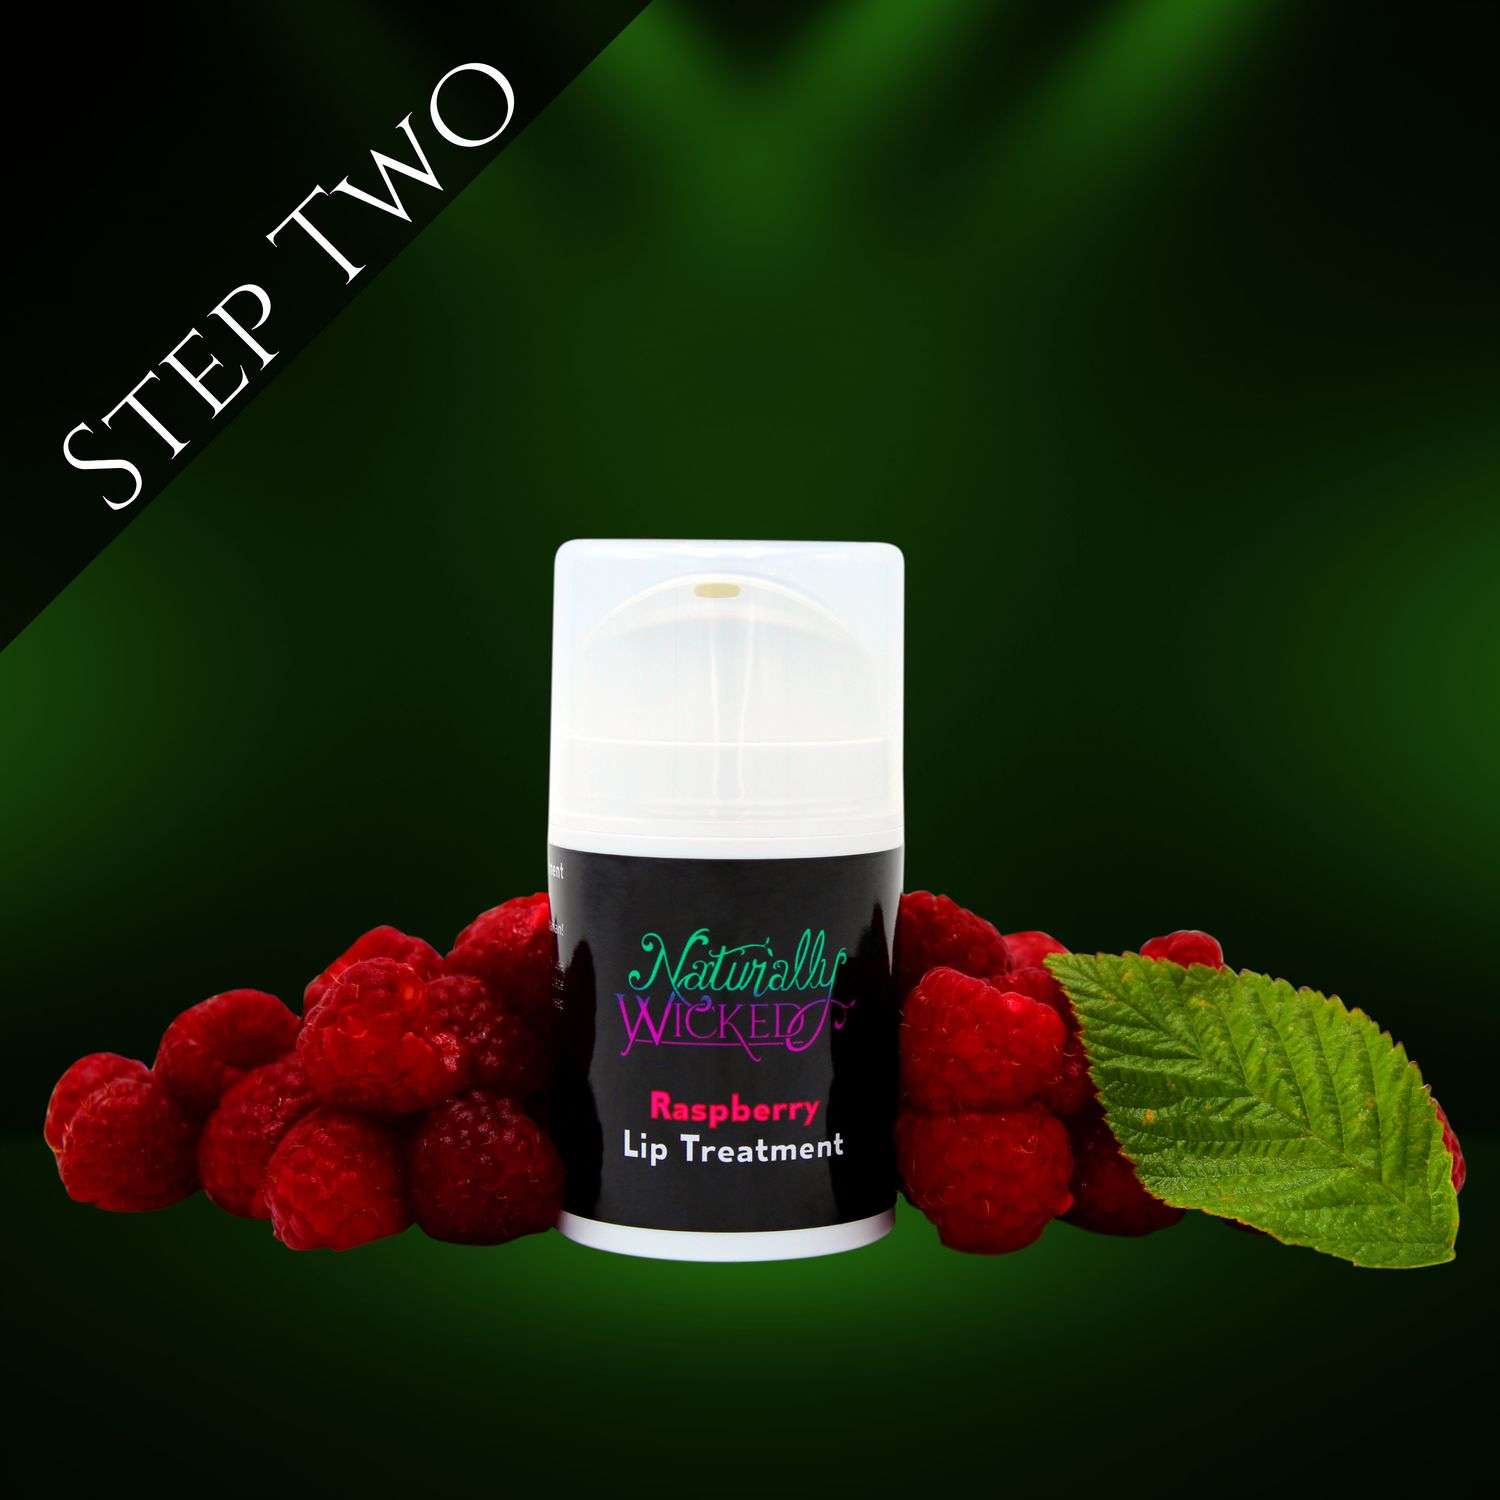 Naturally Wicked raspberry Lip Treatment Surrounded By Luscious, Red, Fruity Raspberries